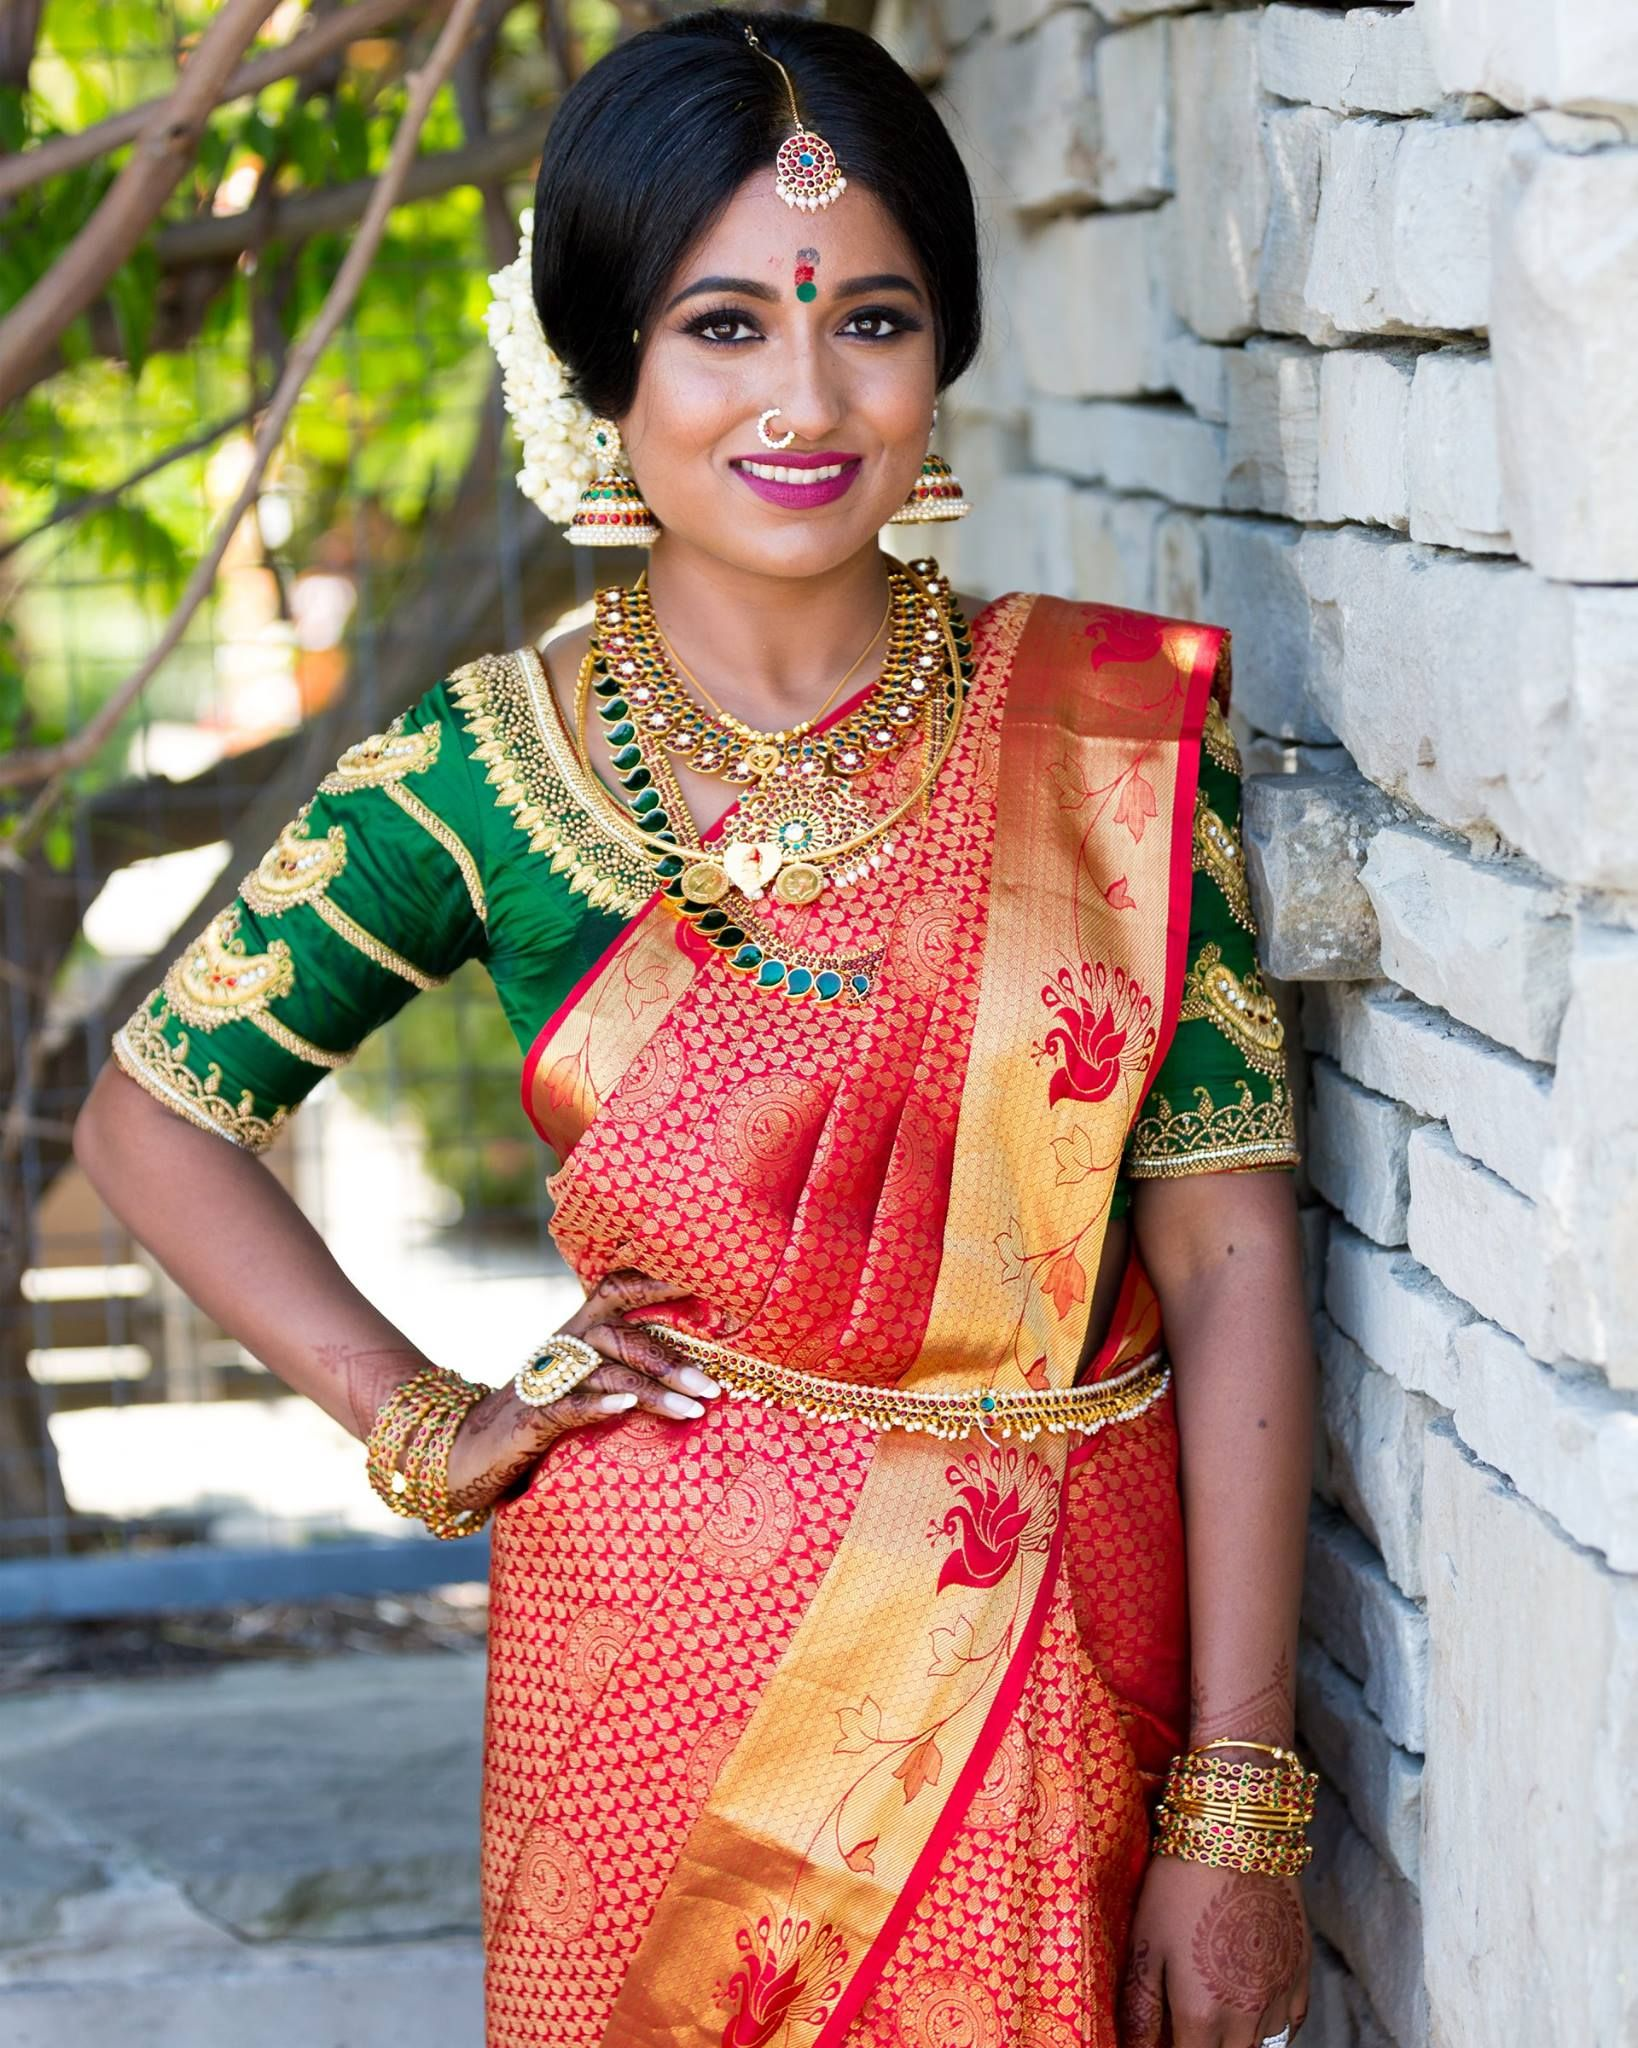 Indian Bridal Makeup Bridal Makeup Indian Bridal Hair Bridal Hair South Asian Bridal Makeup Pakistani Bridal Makeup Bridal Makeup Indian Bridal Hairstyles